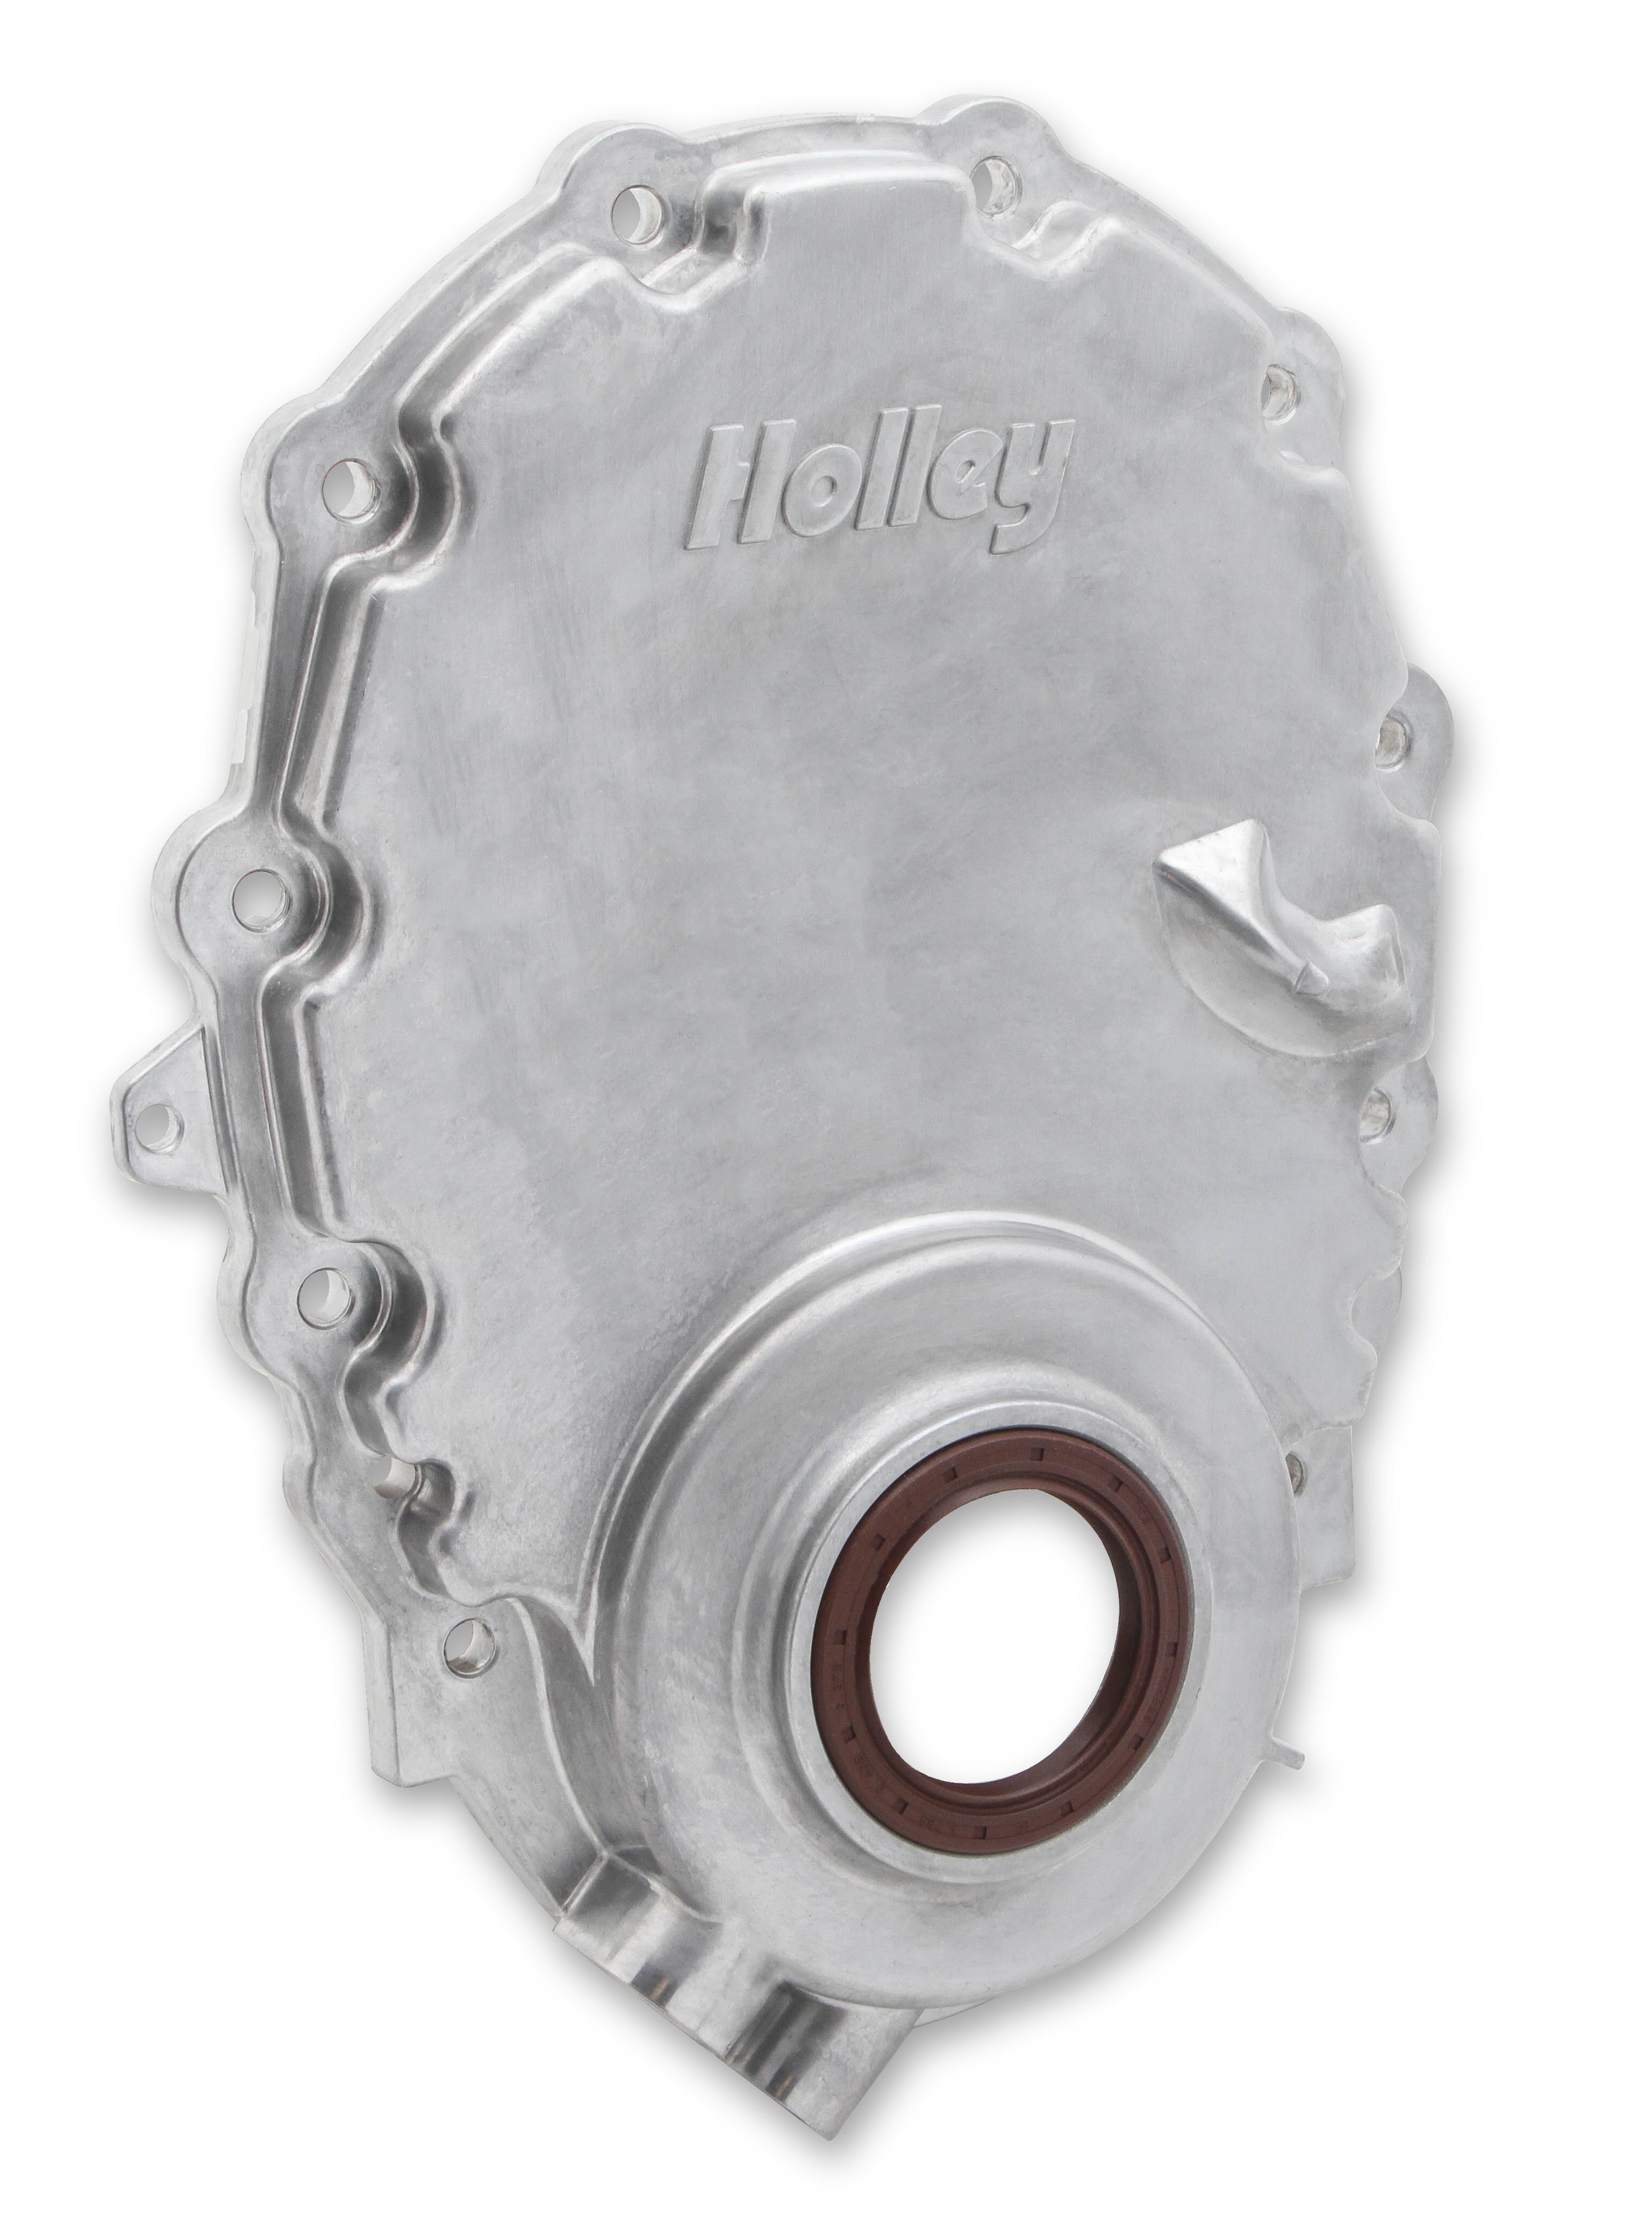 Holley Cast Aluminum Timing Chain Cover